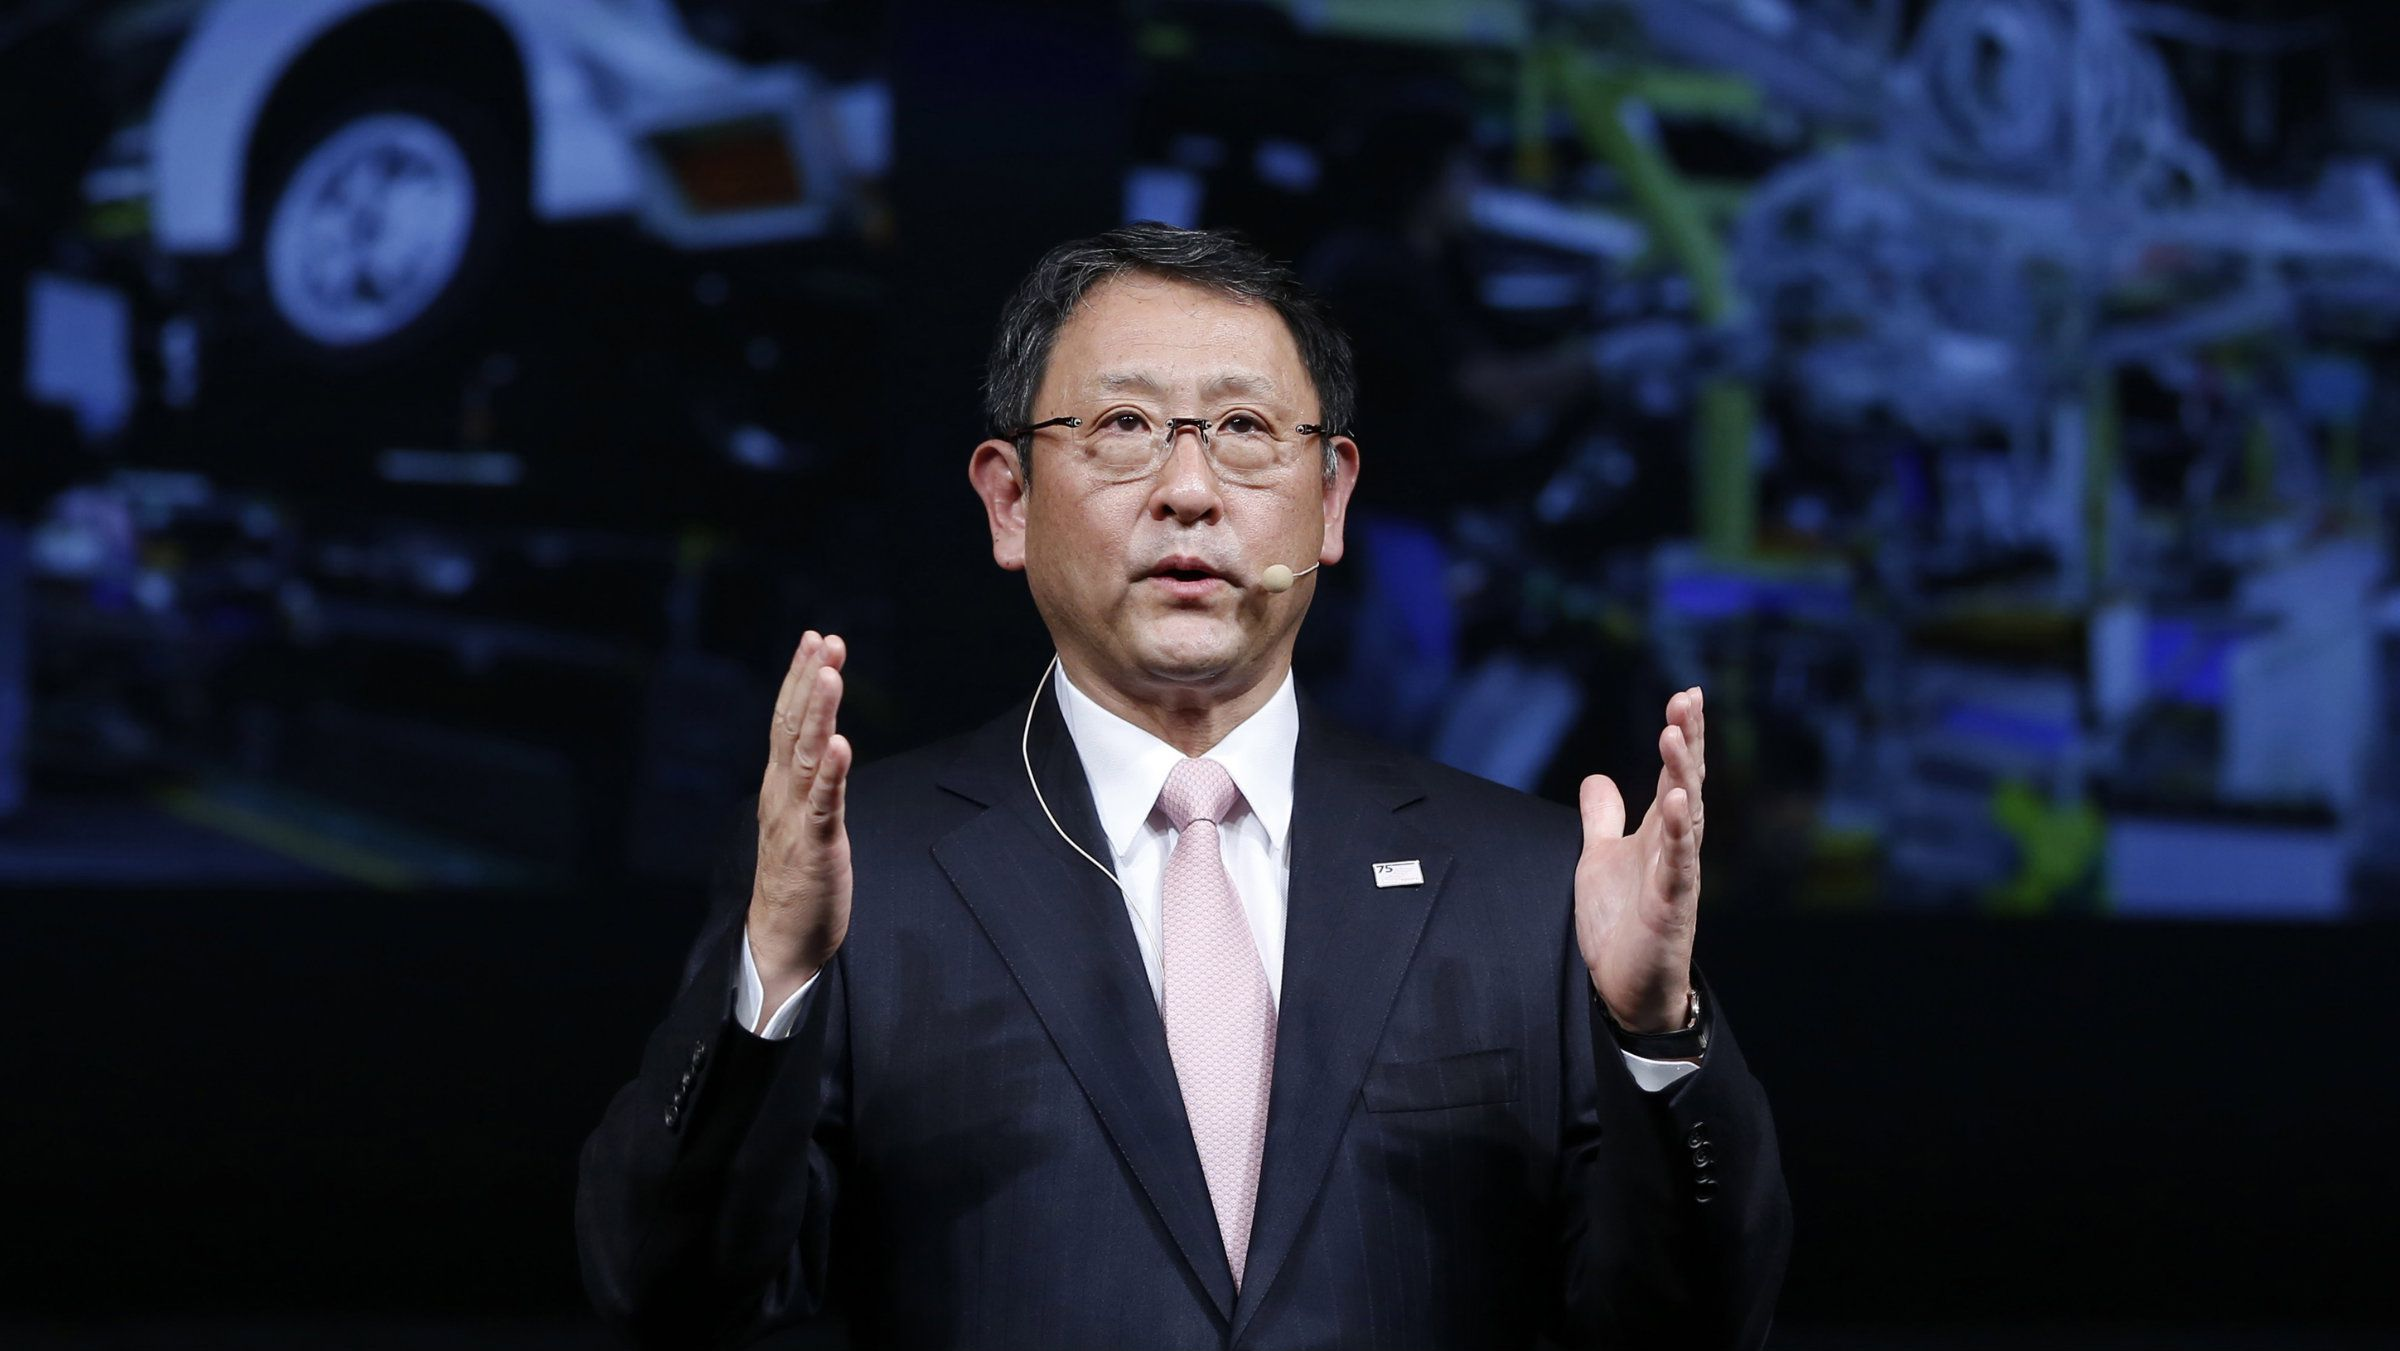 Toyota President Akio Toyoda attempts to show the approximate size of the wage increase.